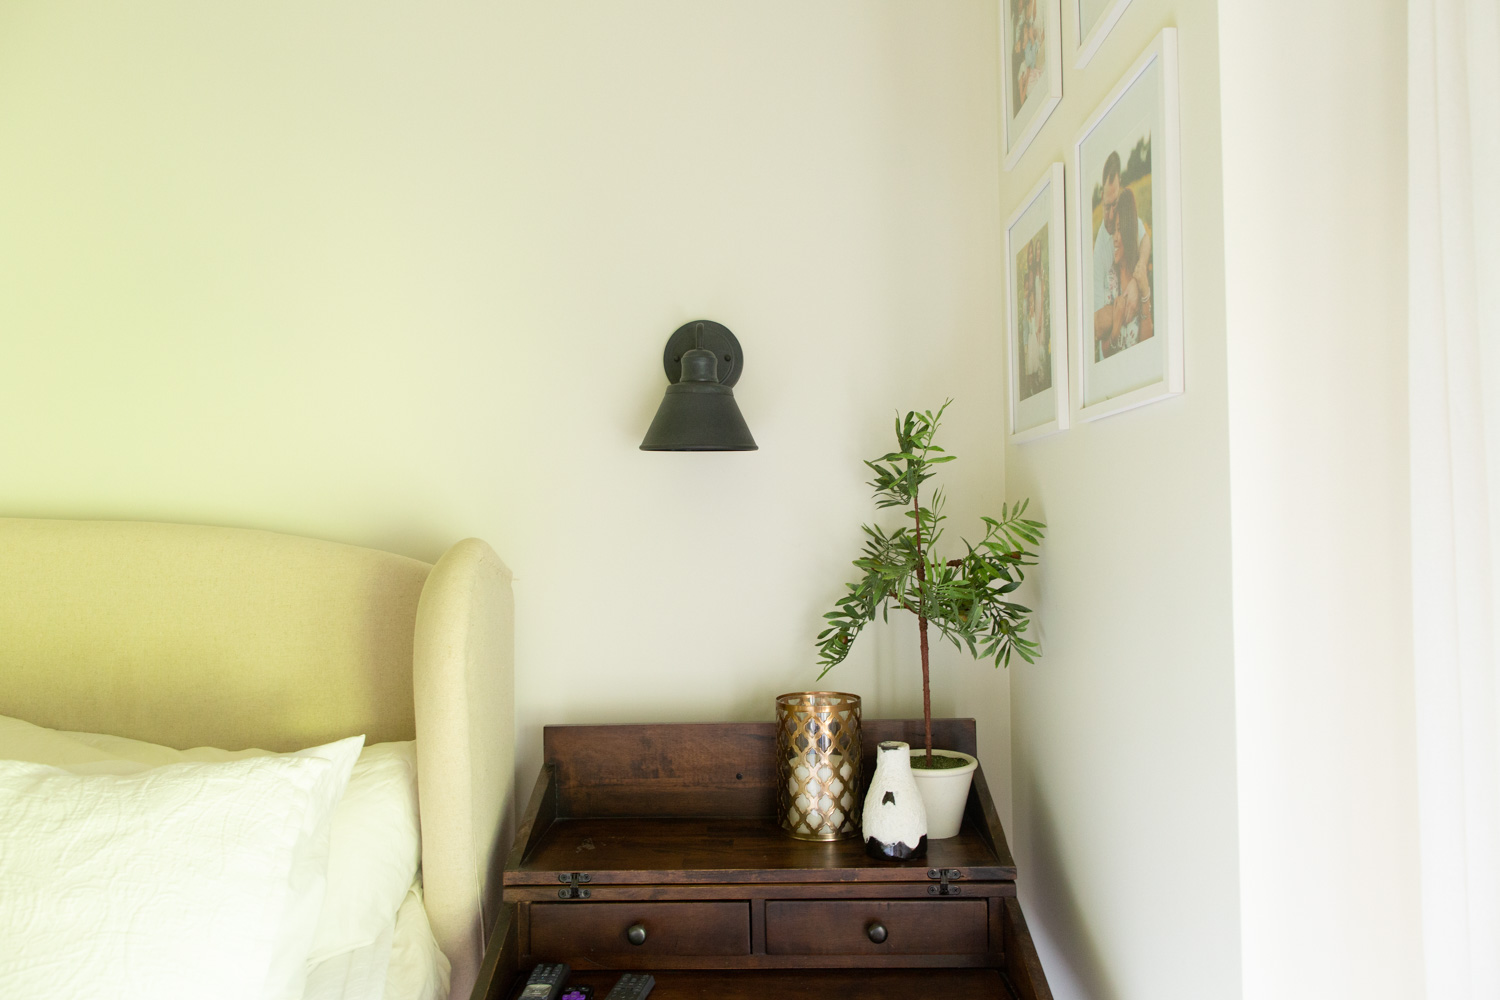 DIY Wall Sconce Lighting without Electricity or Power ... on Sconces No Electric Power id=41465